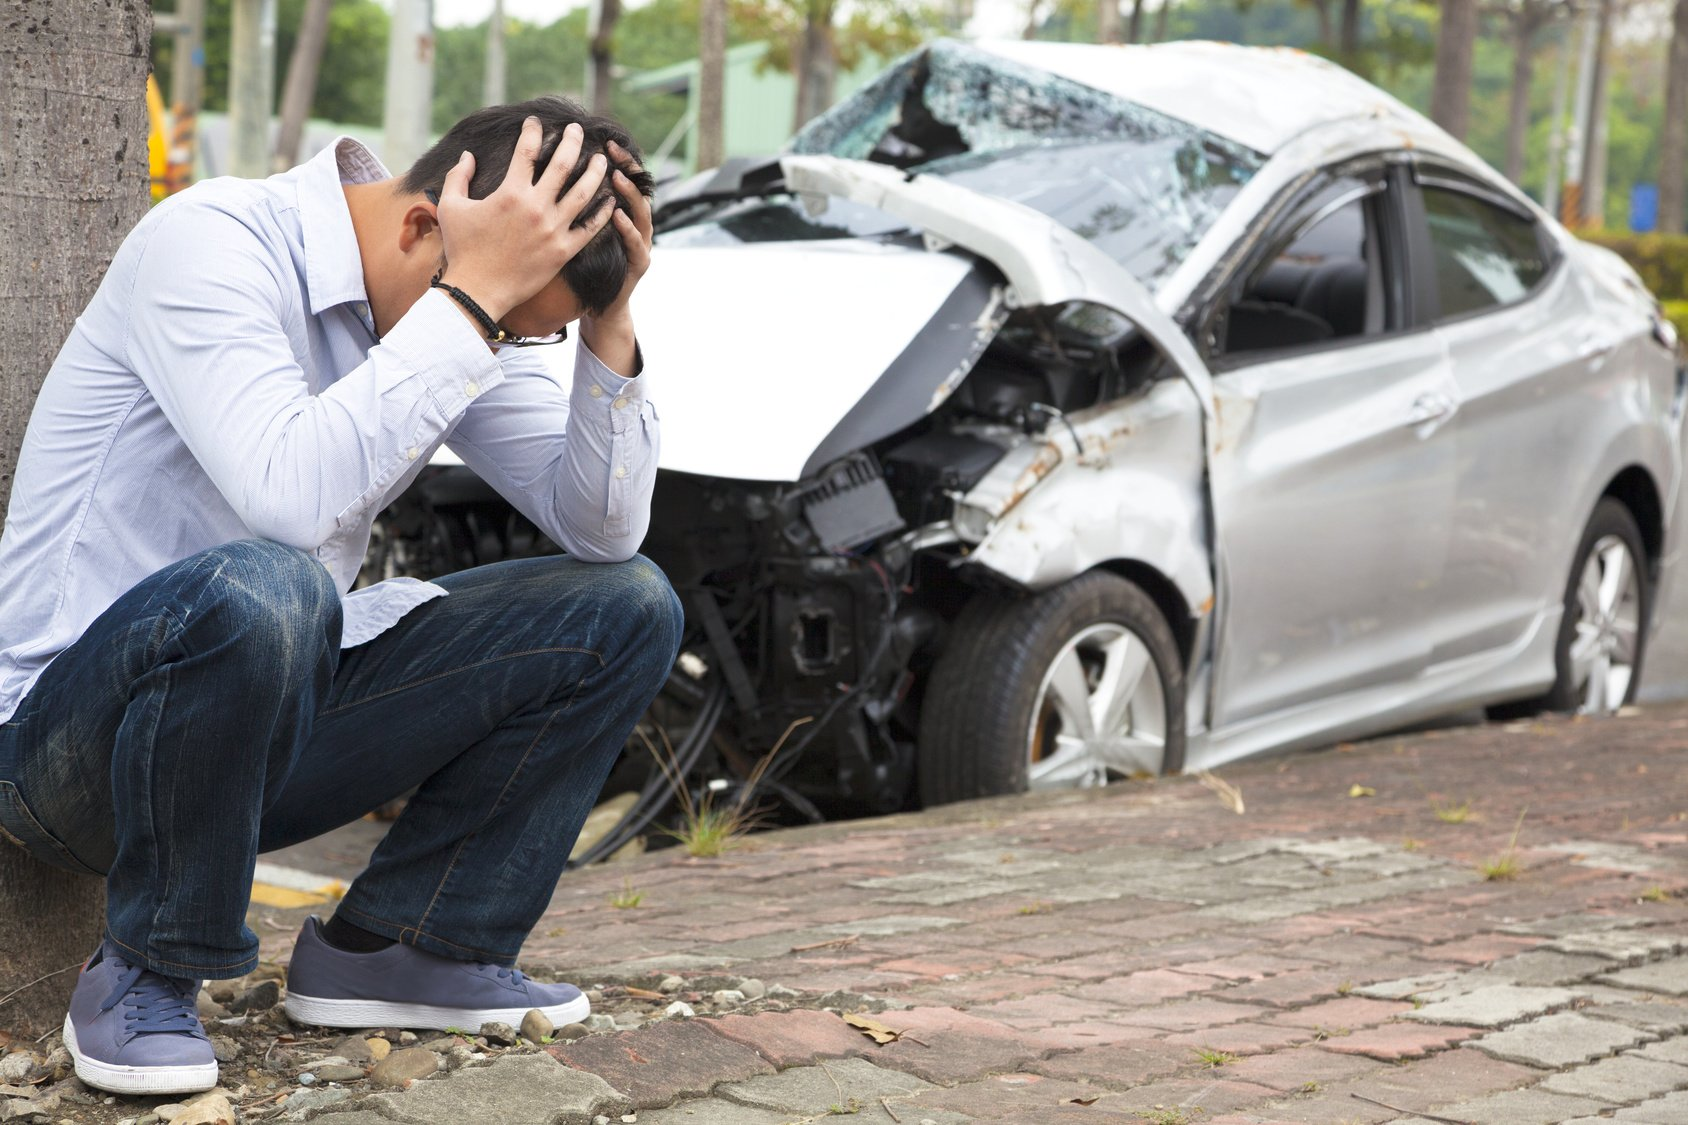 Marijuana Causes Car Accidents